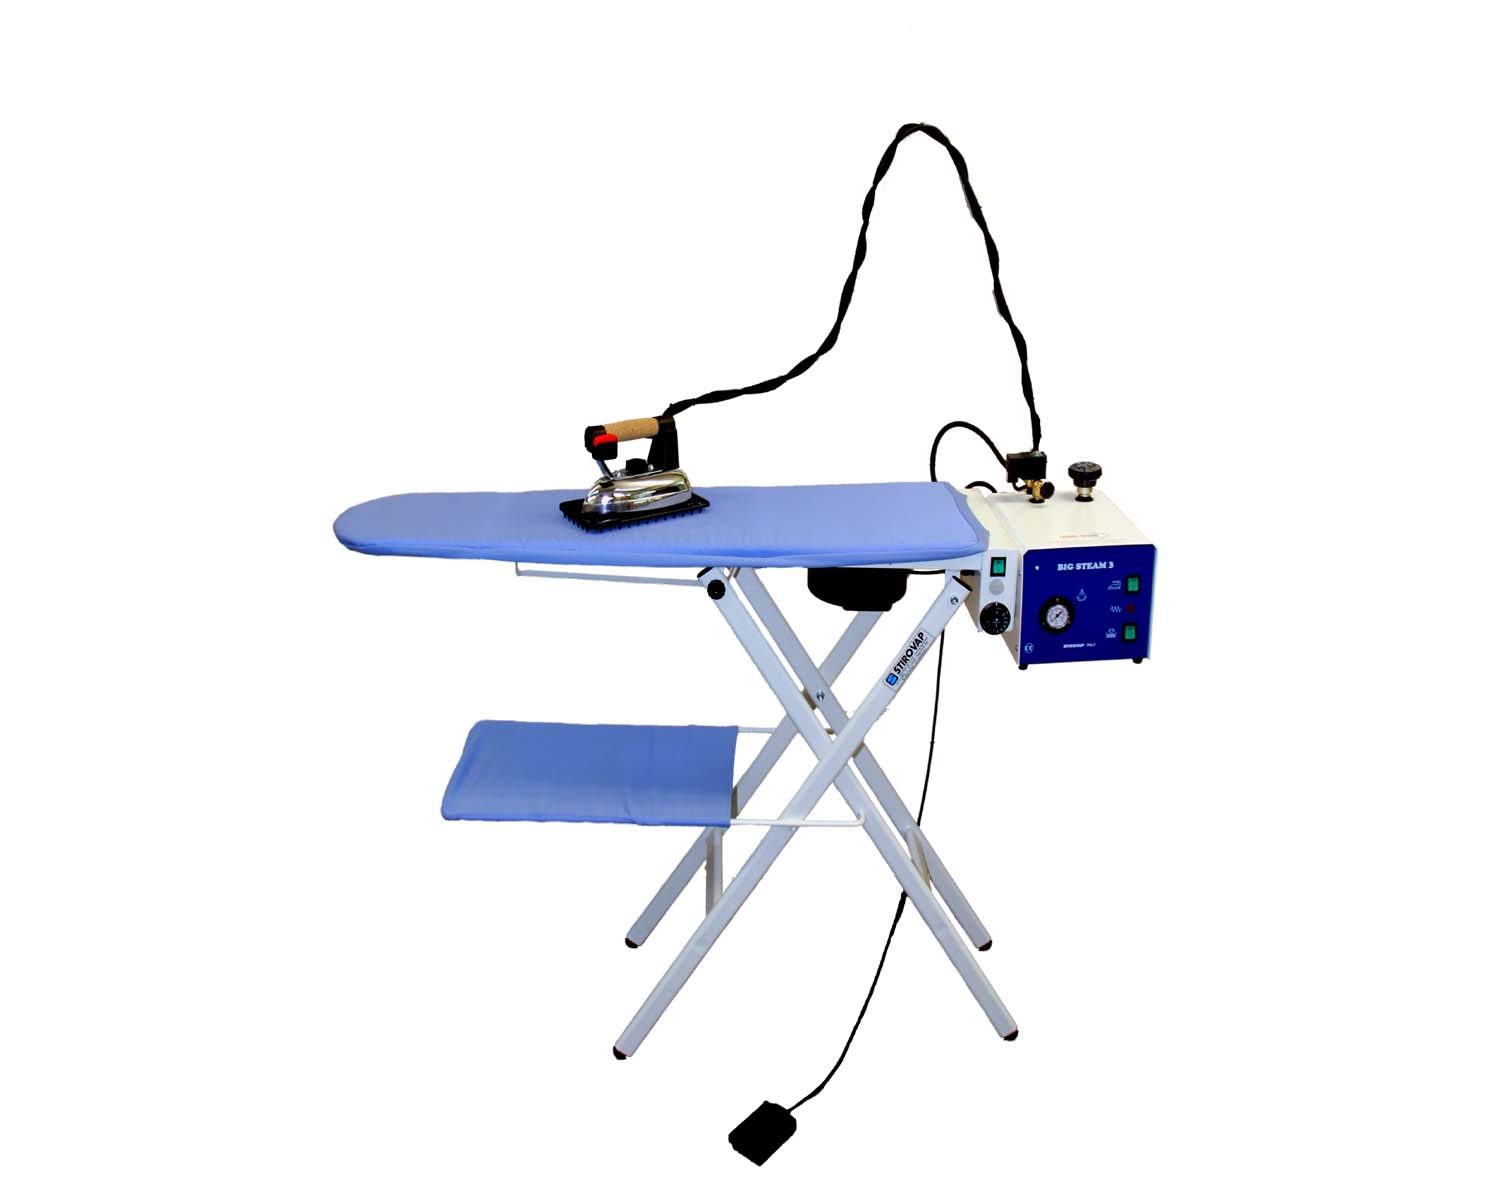 Full Stirrup Post Anchors together with 100595082 besides Clearance And Interference Coupling Fits further Piping Schematic Symbols further What Are The Main Differences Between Hydraulic And Pneumatic Why Are Hydraulics More Widely Used. on pneumatic press table